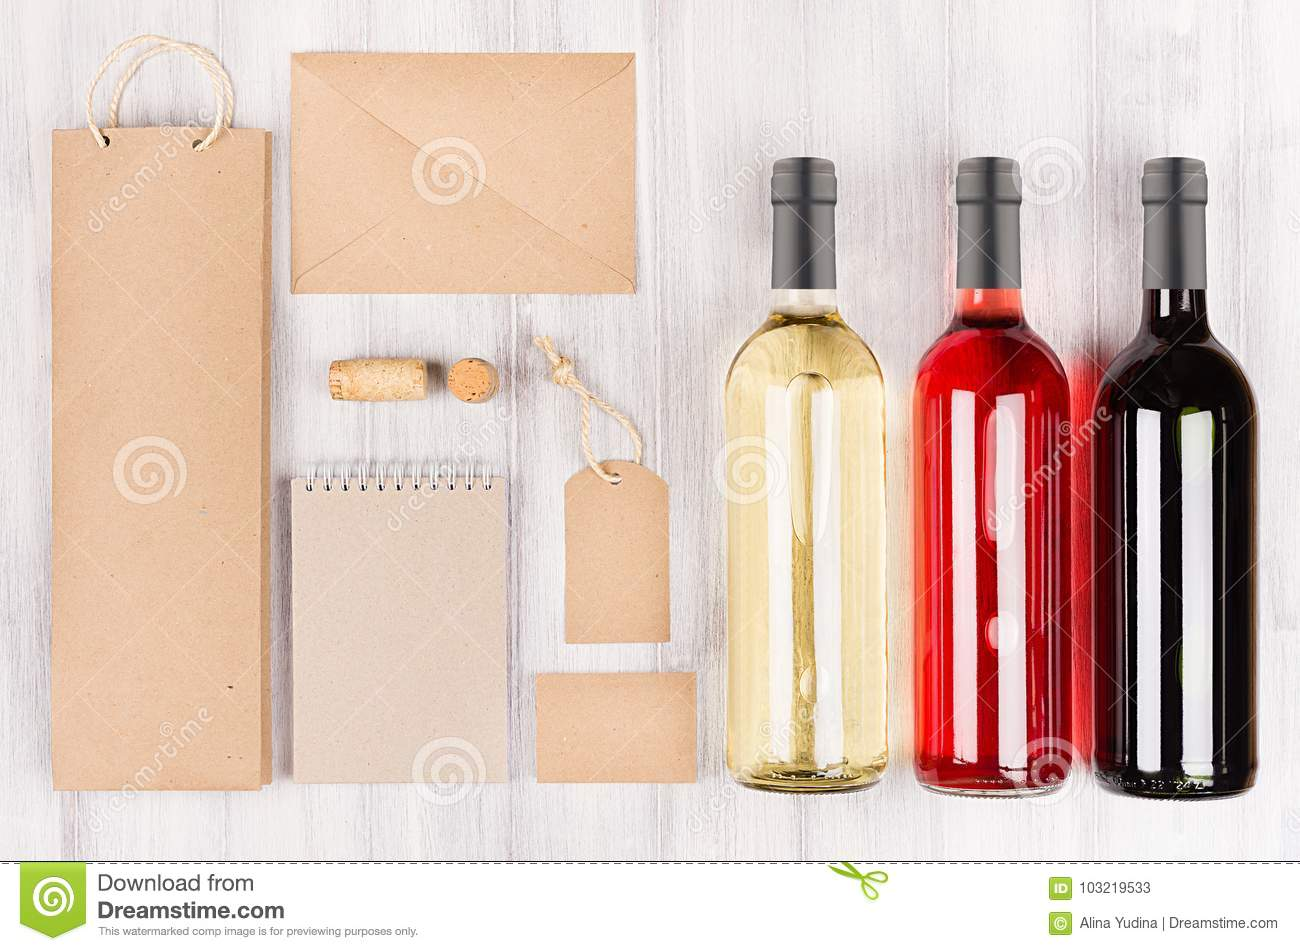 Corporate identity template for wine industry, blank brown kraft packaging, stationery, merchandise set with bottles different wi